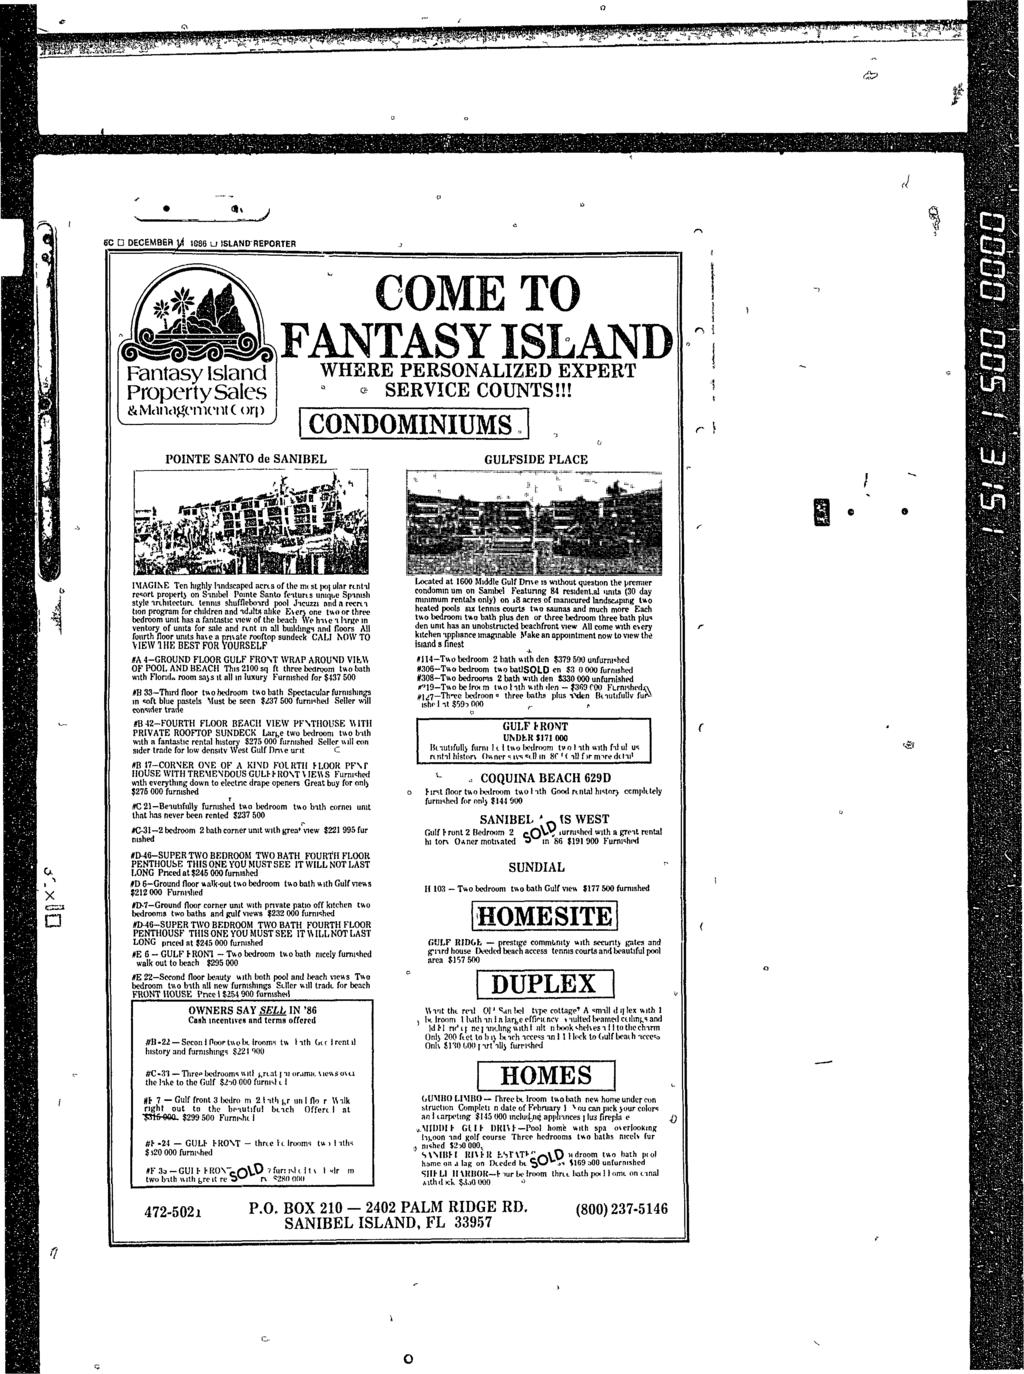 Ott J EC D DECEMBER ]^ 1886 u ISLAND-REPORTER #t COME TO vojwlfantasy ISLAND Fantasy Island WHERE PERSONALIZED EXPERT PropertySales * SERVICE COUNTS!